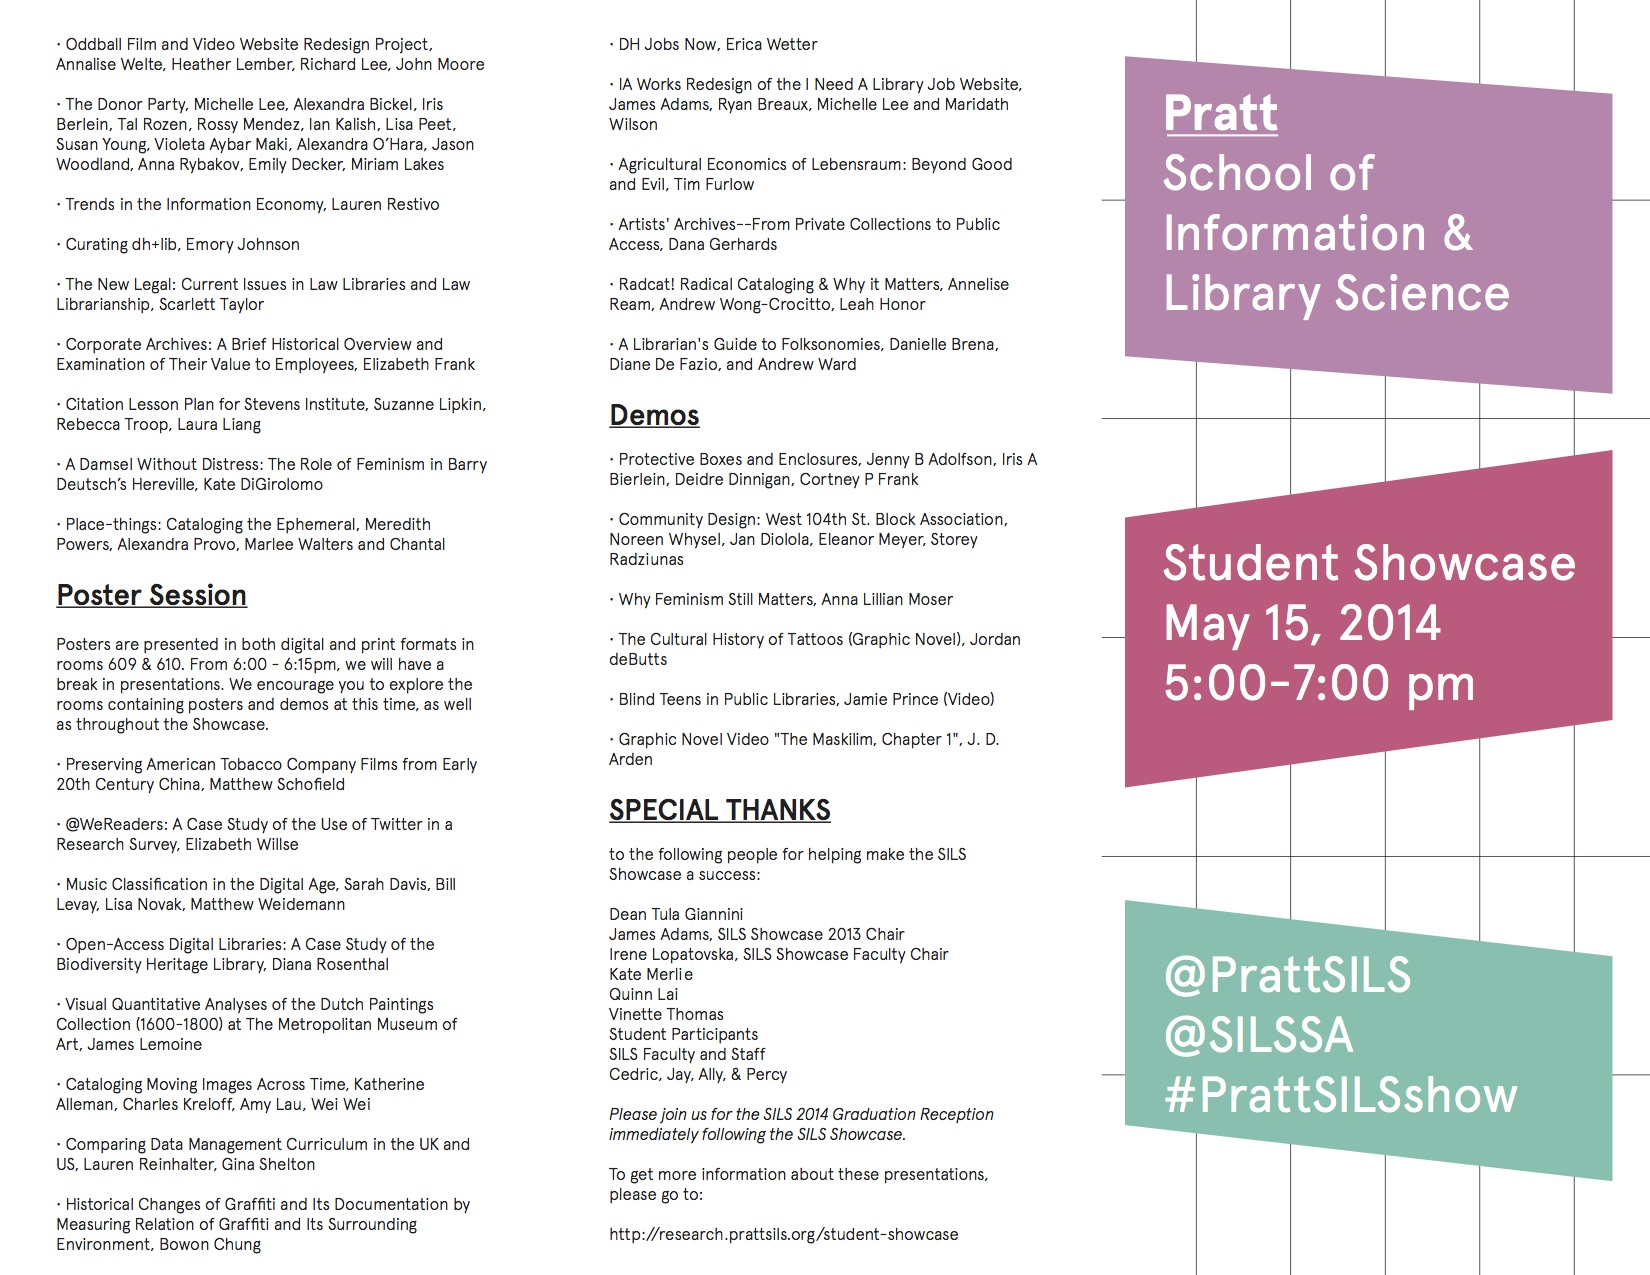 PrattSILSShowcase14Program